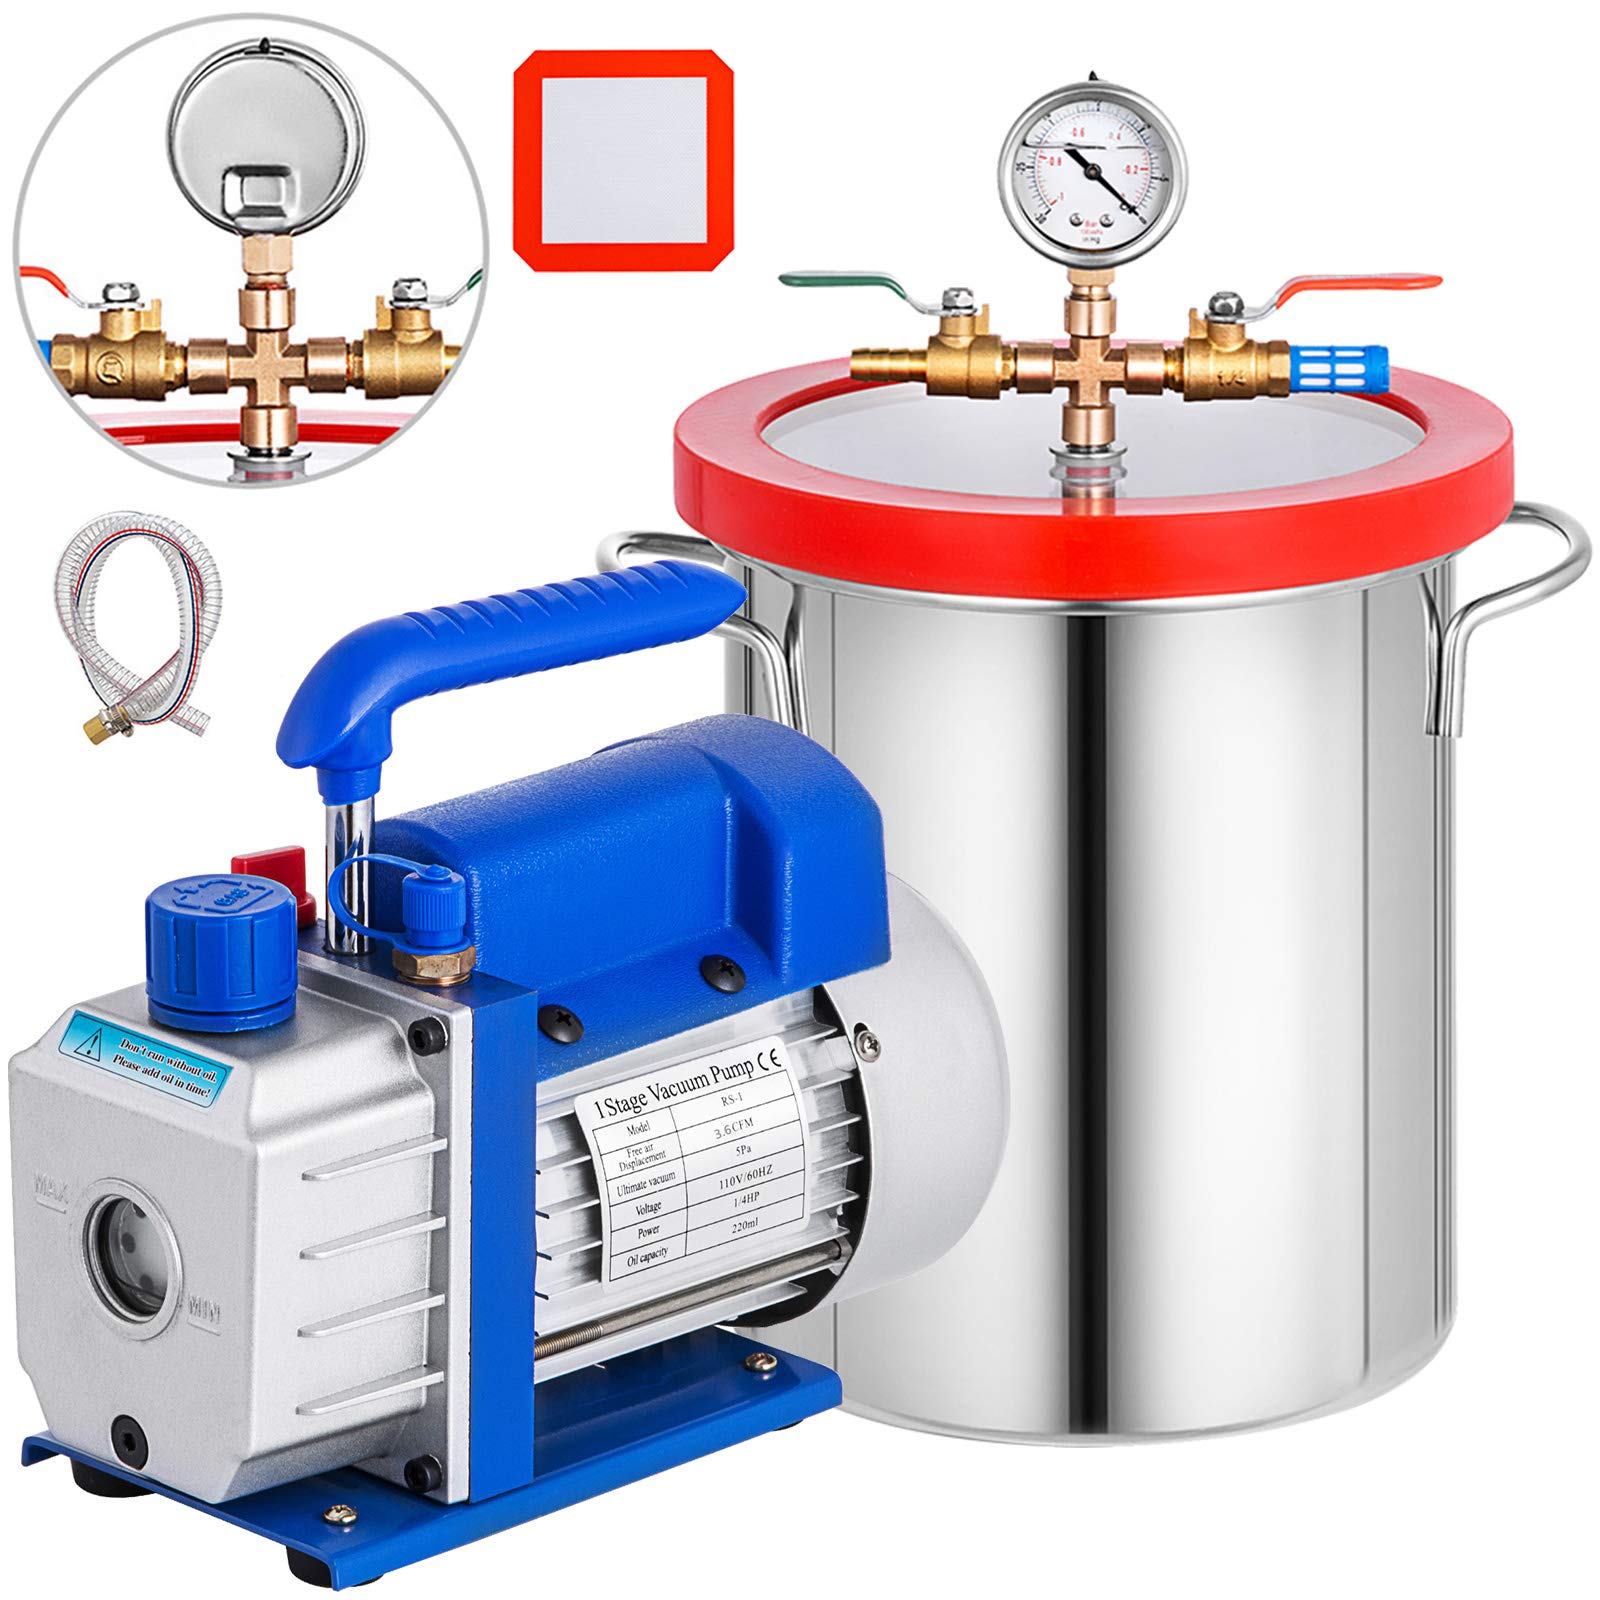 Bestauto 3 Gallon Vacuum Chamber Kit Stainless Steel Degassing Chamber 12L Vacuum Degassing Chamber Kit with 3.6 CFM 1 Stage Vacuum Pump HVAC by Best In Auto